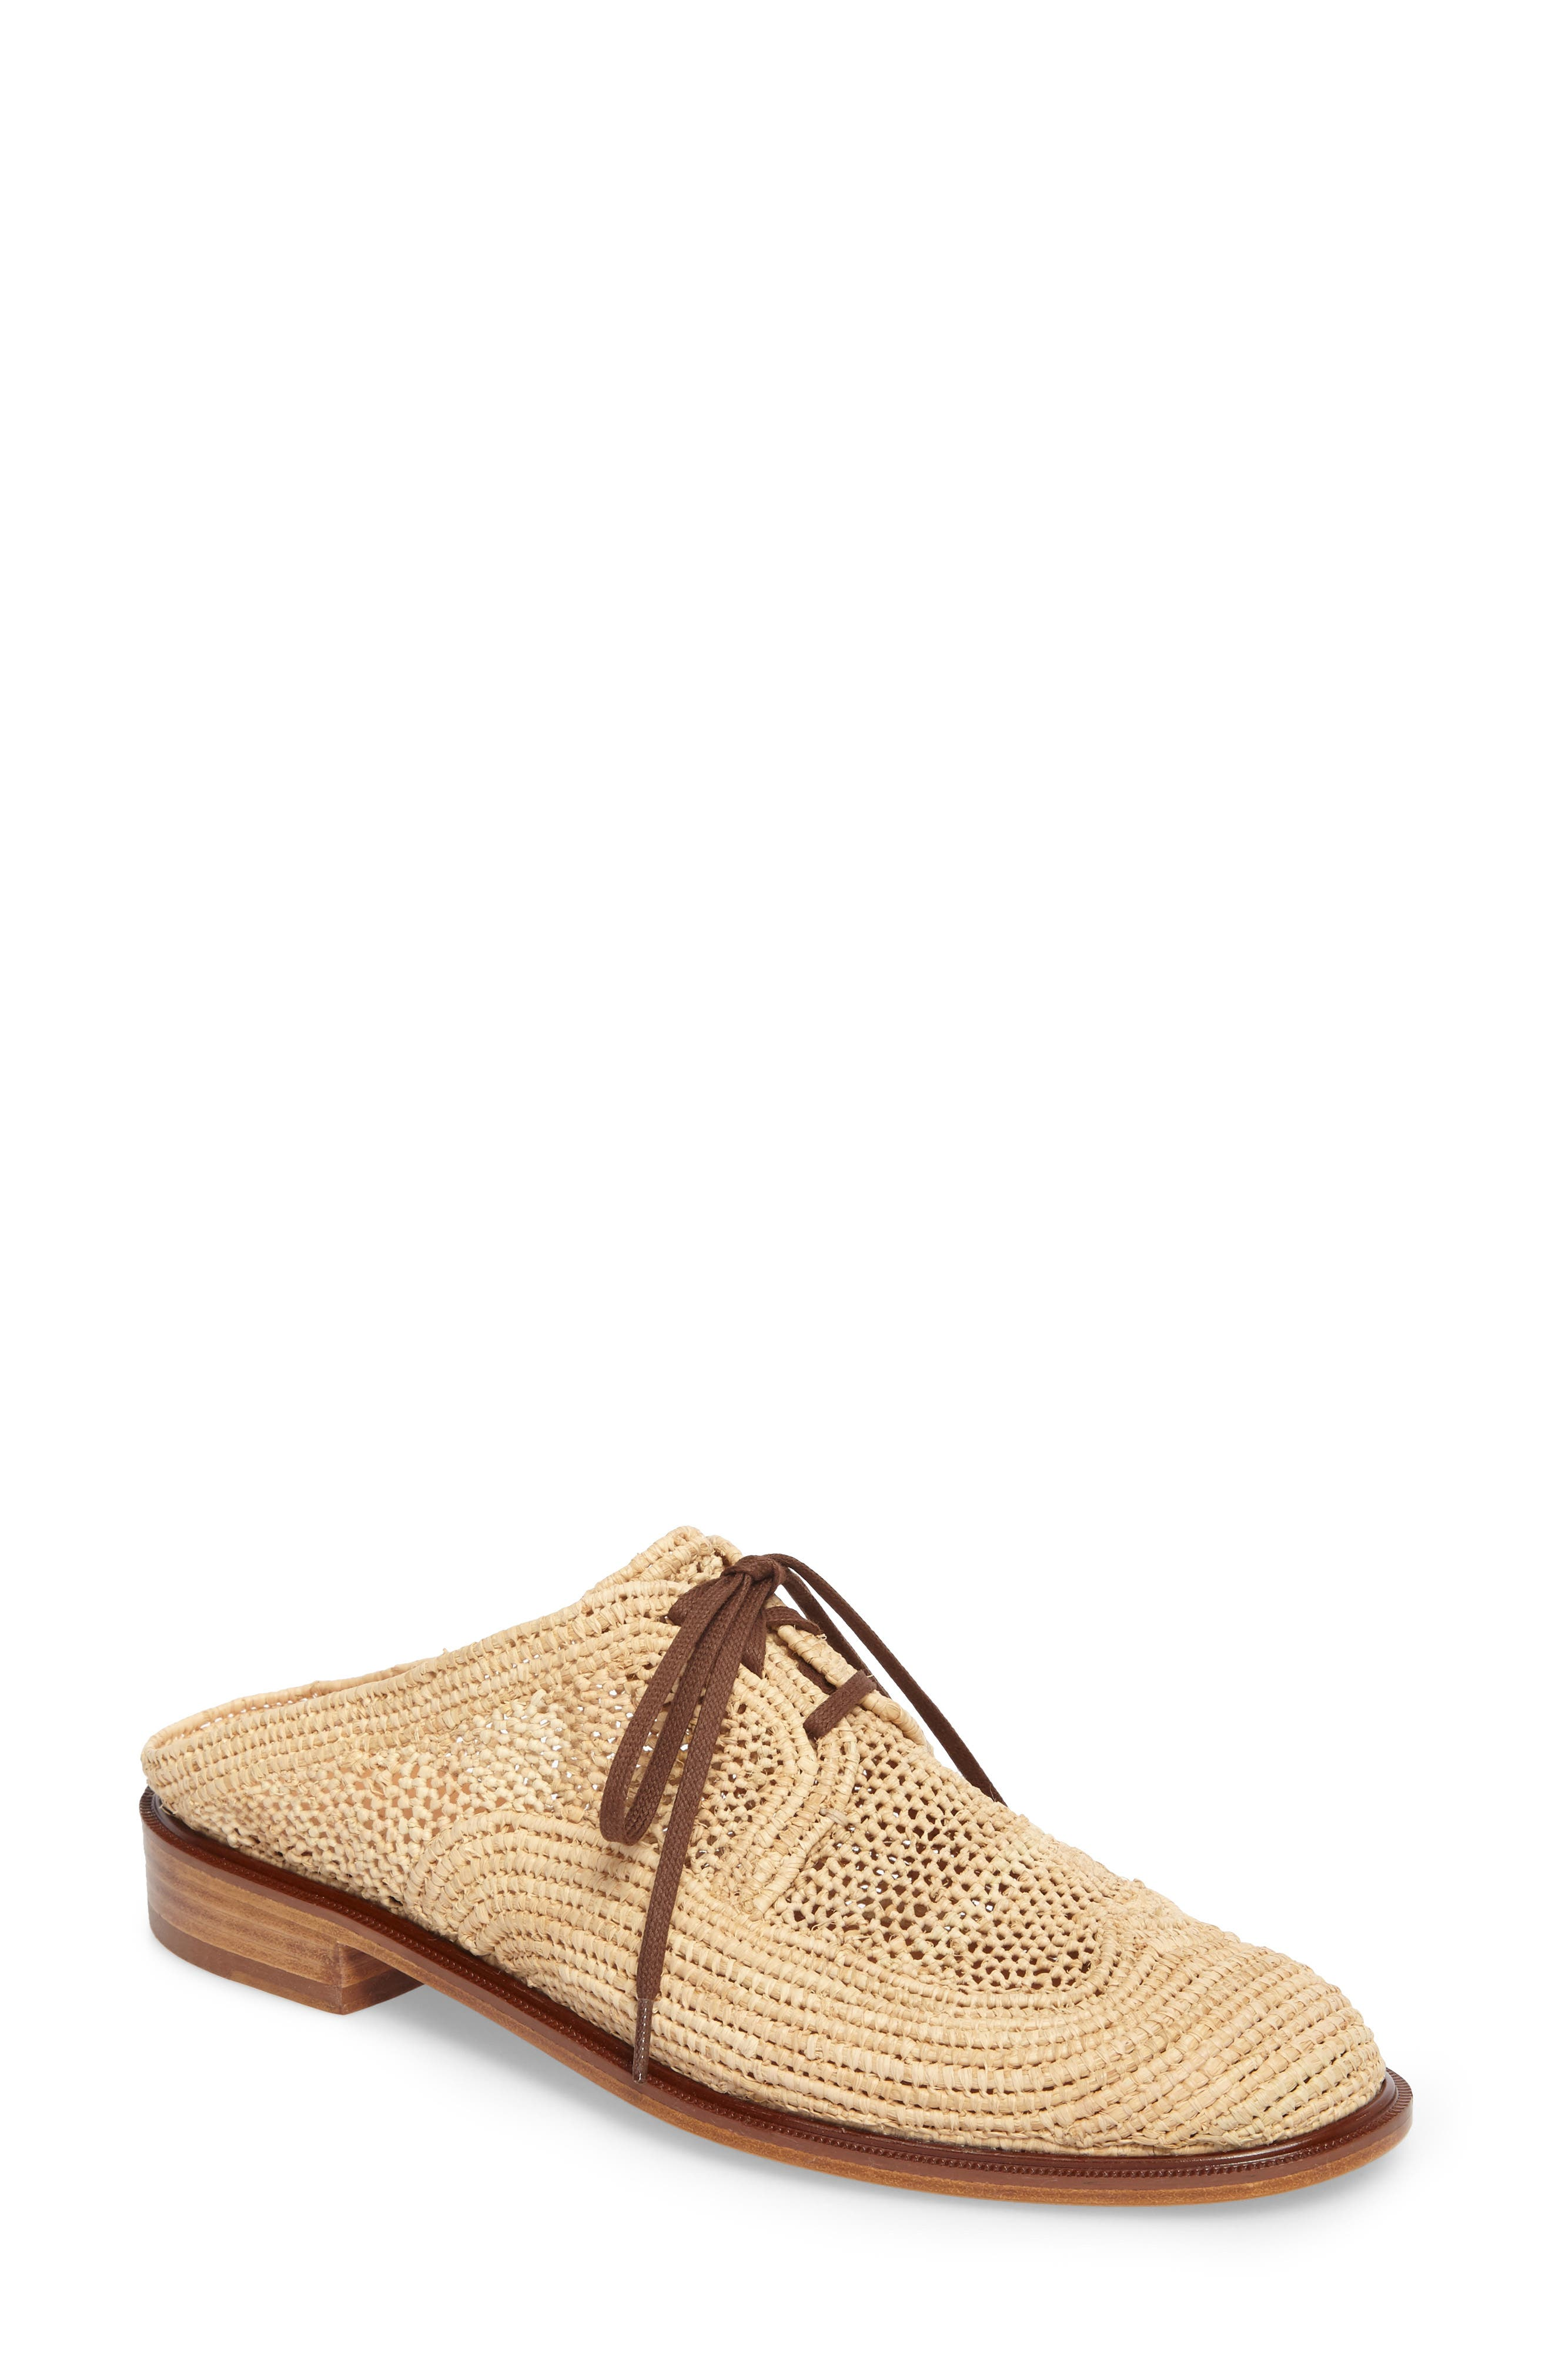 Robert Clergerie Jaly Woven Loafer Mule (Women)